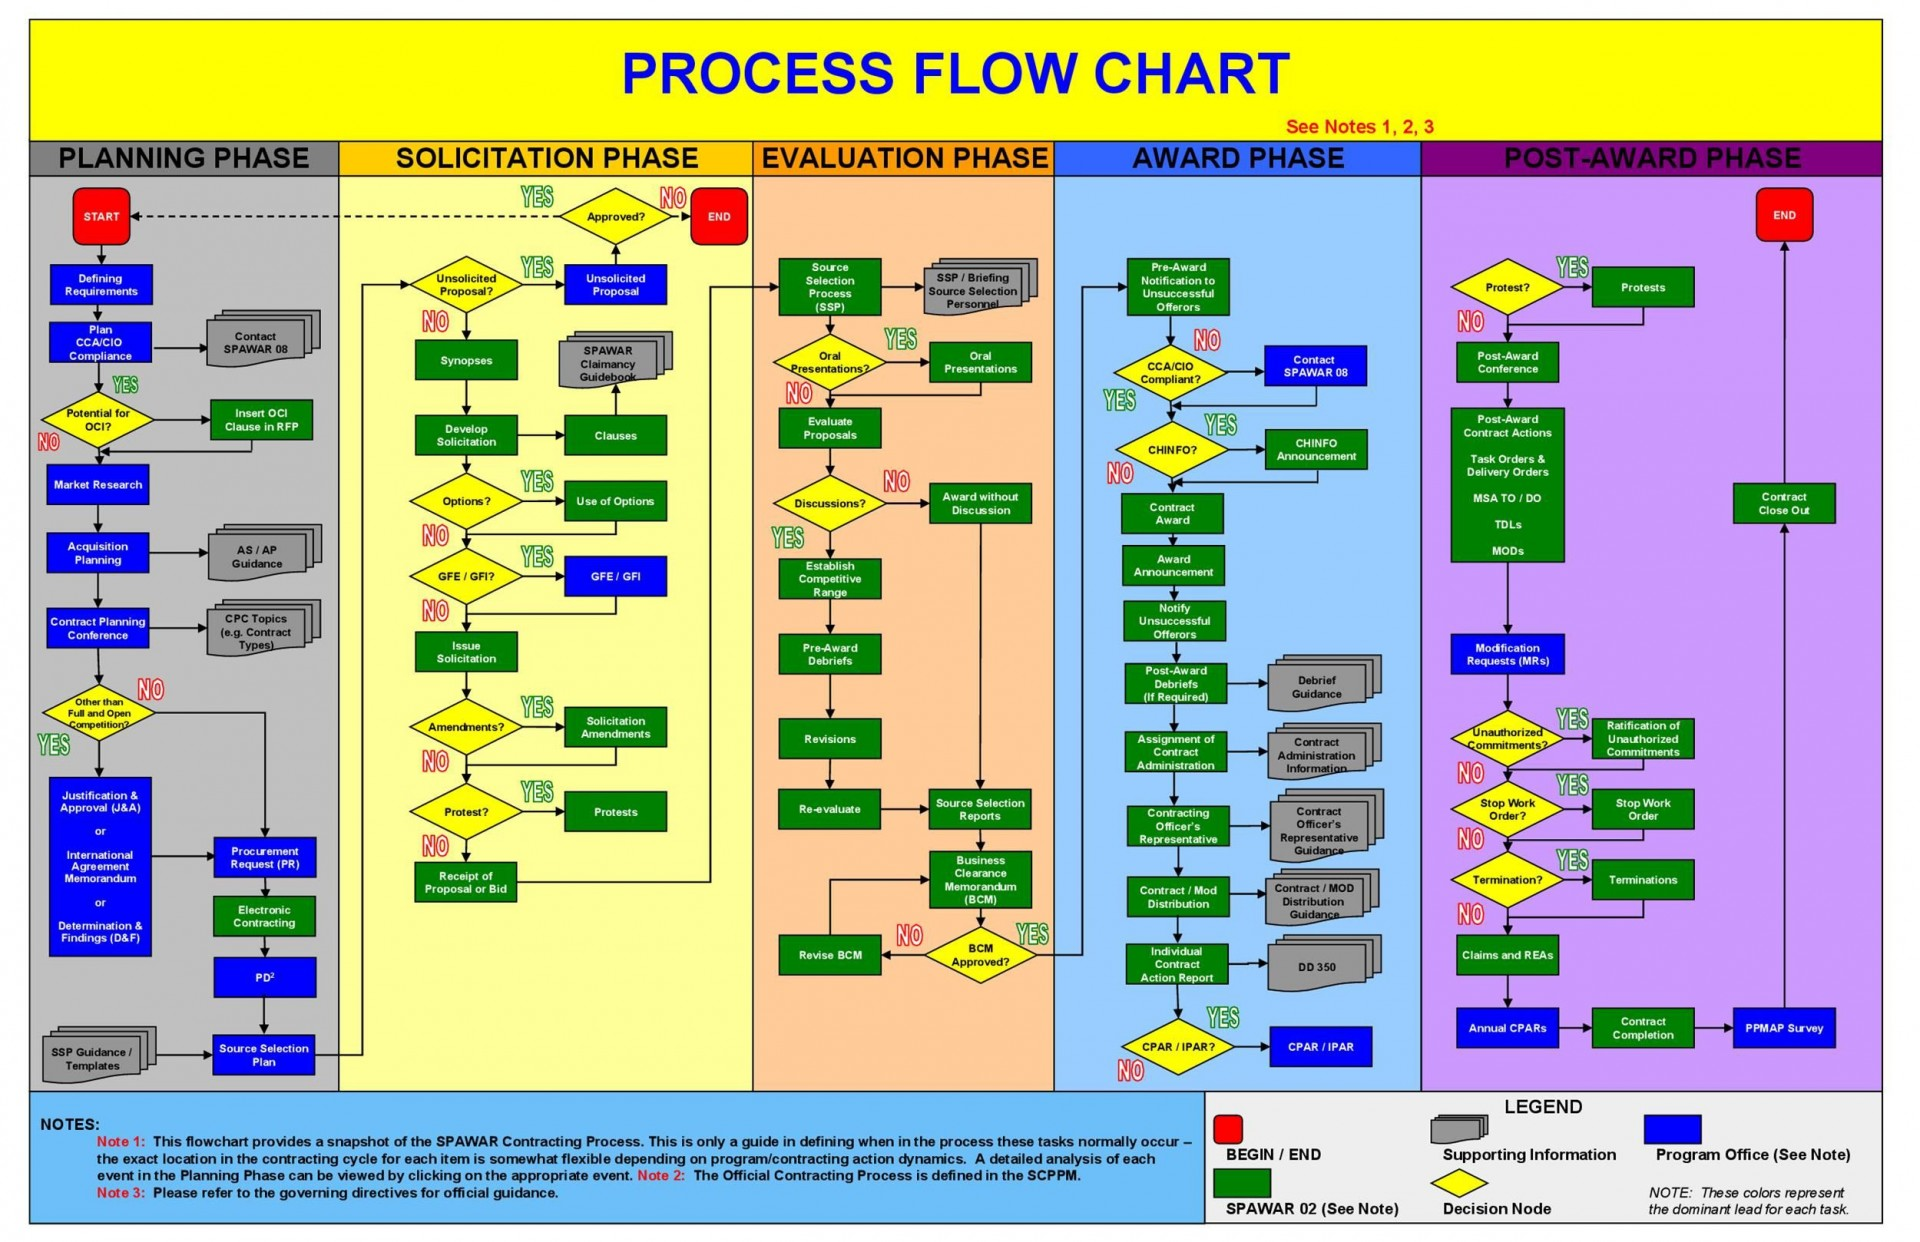 003 Wondrou Proces Flow Chart Template Excel Download High Resolution  Free1920